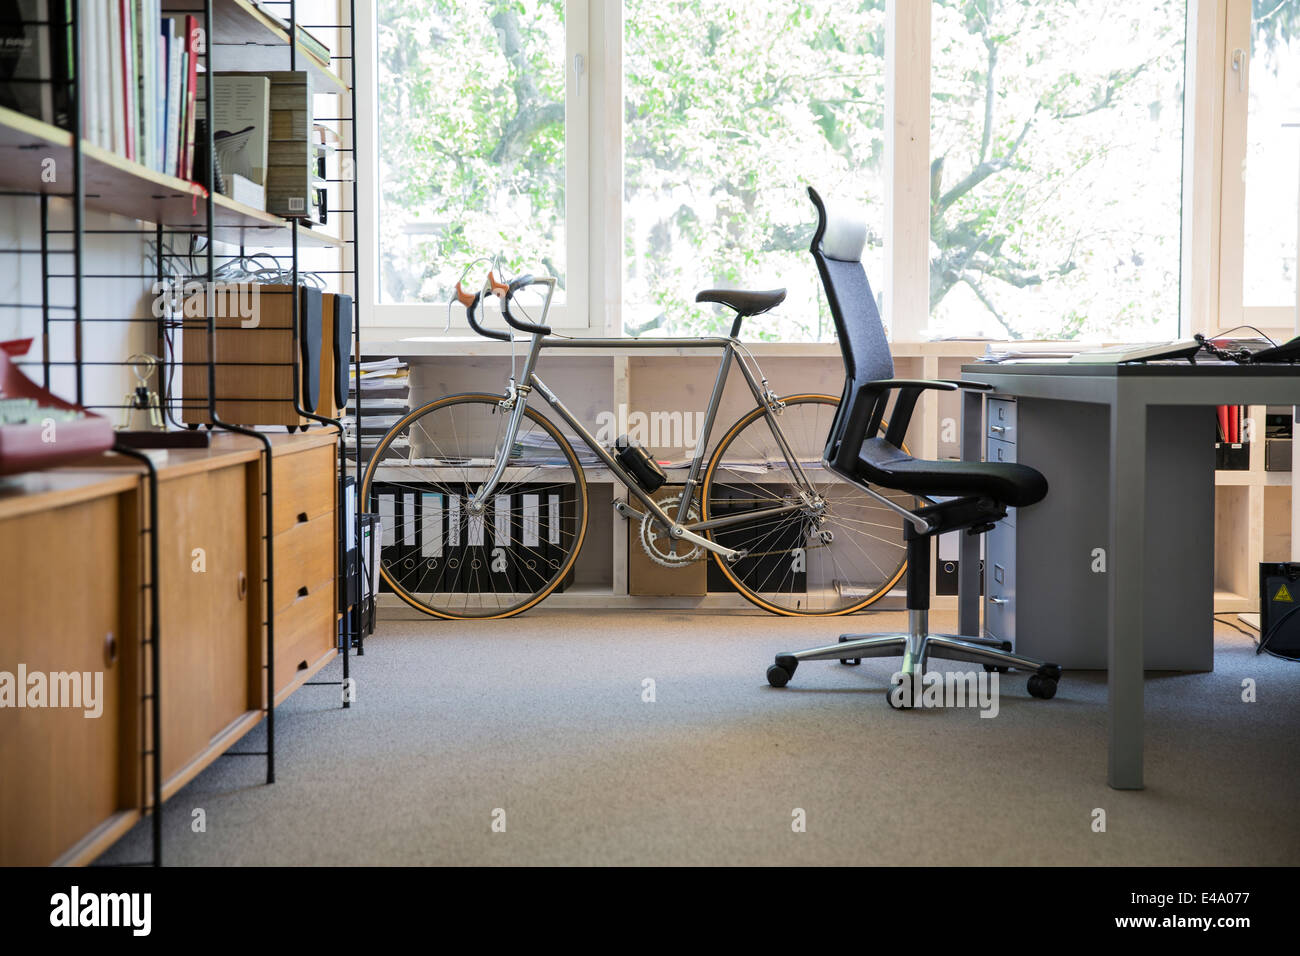 Racing cycle standing at workplace of modern office - Stock Image